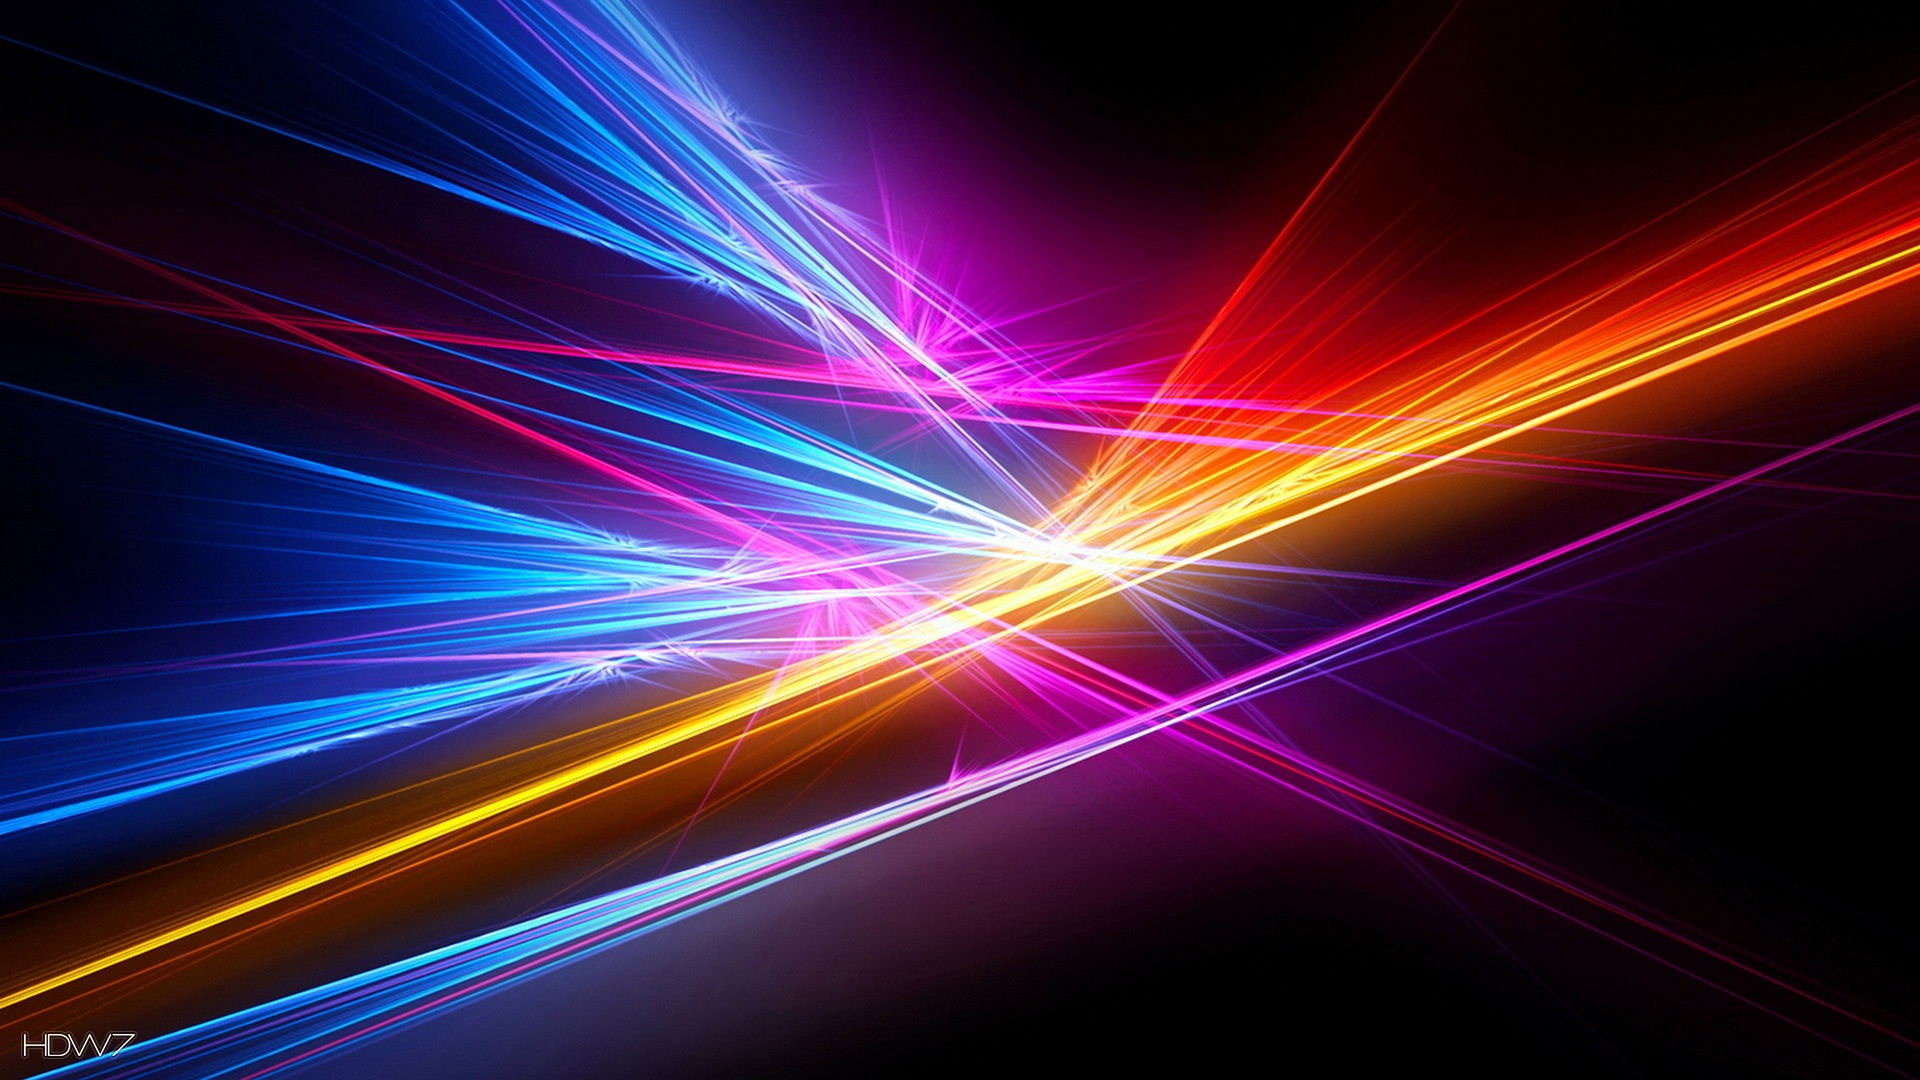 abstract electric light lines 1920x1080 hd wallpaper gallery 151